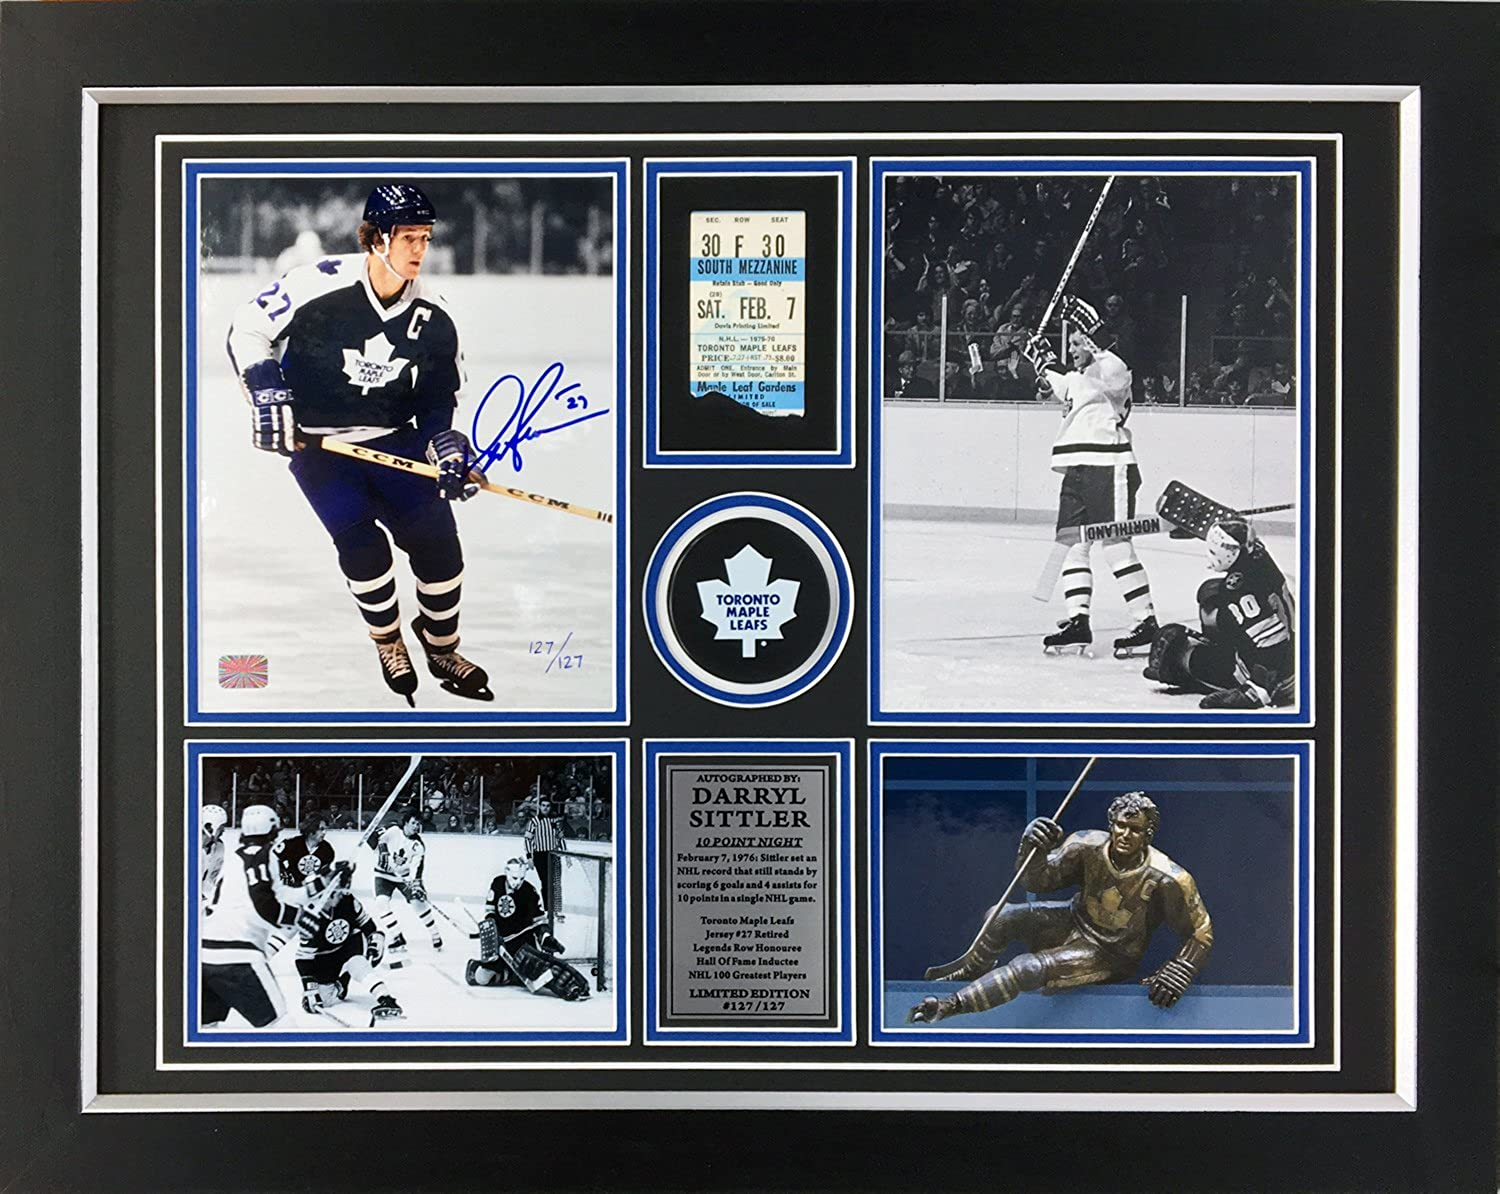 Darryl Sittler Signed 10Point Record Game Ltd Ed 127 127  TO Maple Leafs